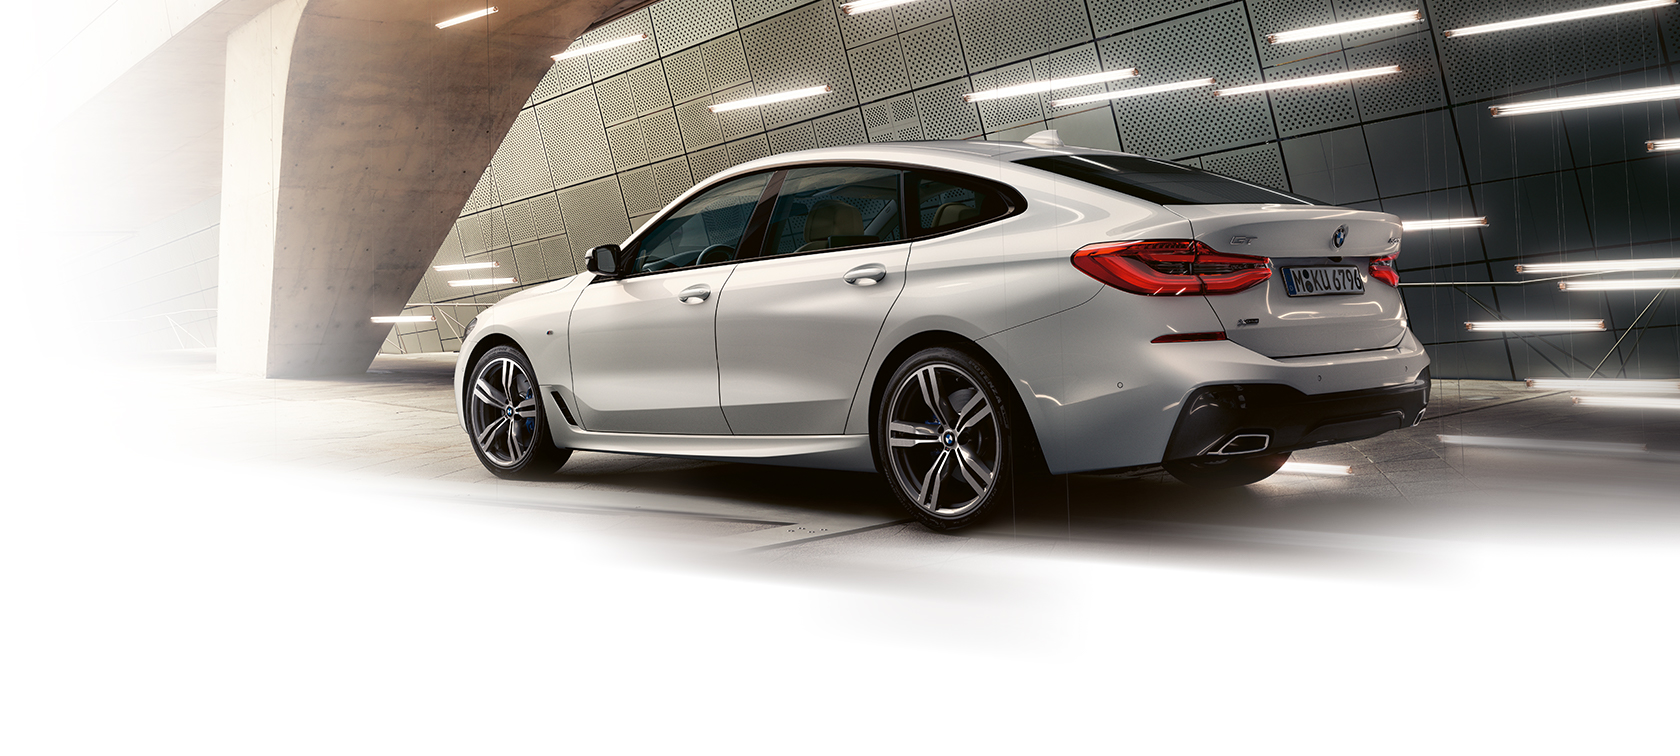 BMW 6-Series Gran Turismo grey rear view: lights tunnel